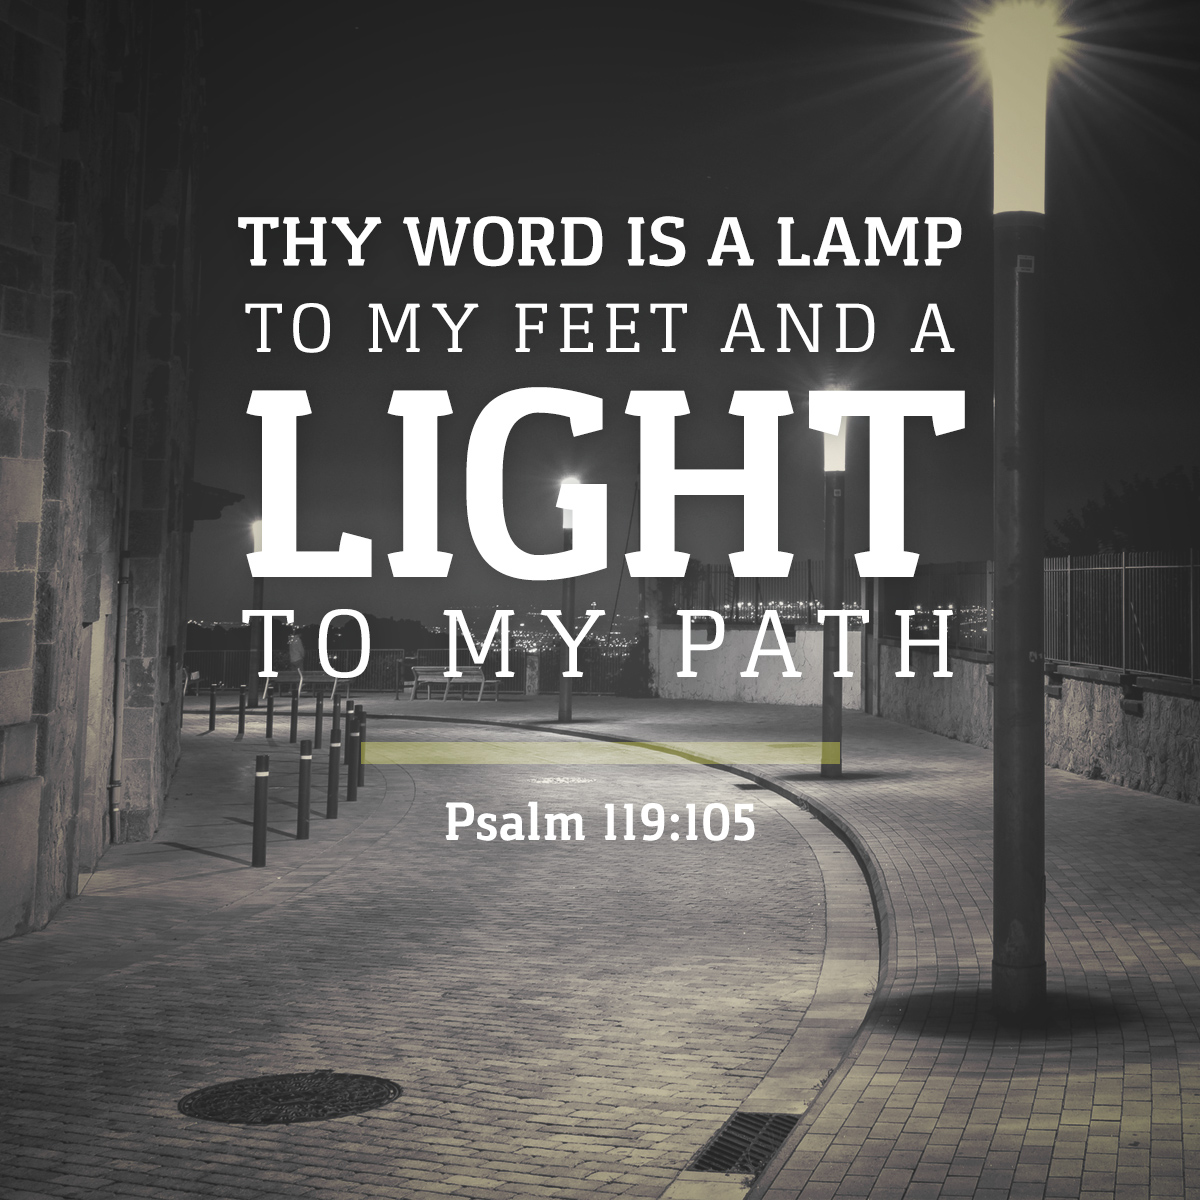 Psalm 119:105 Daily Verse